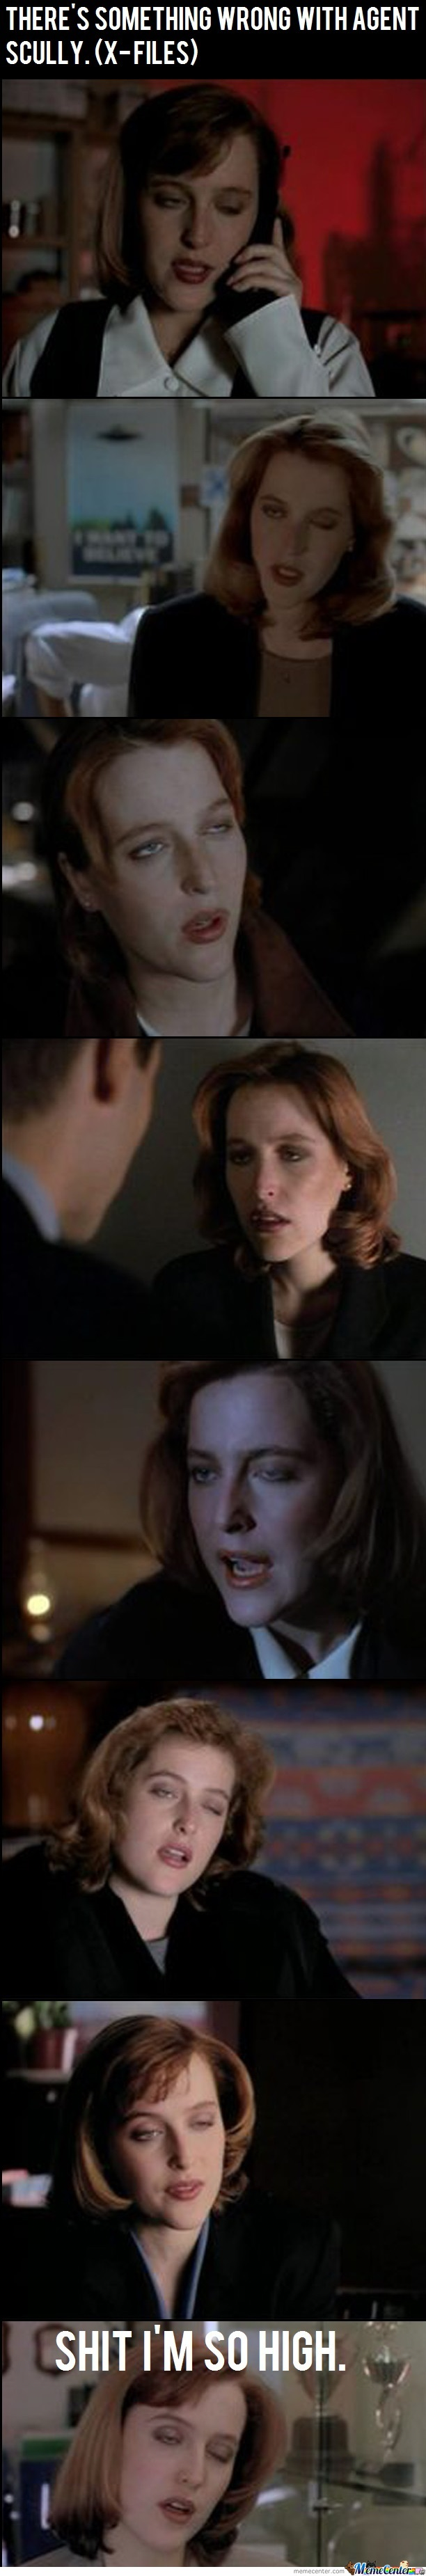 There's Something Wrong With Miss. Scully